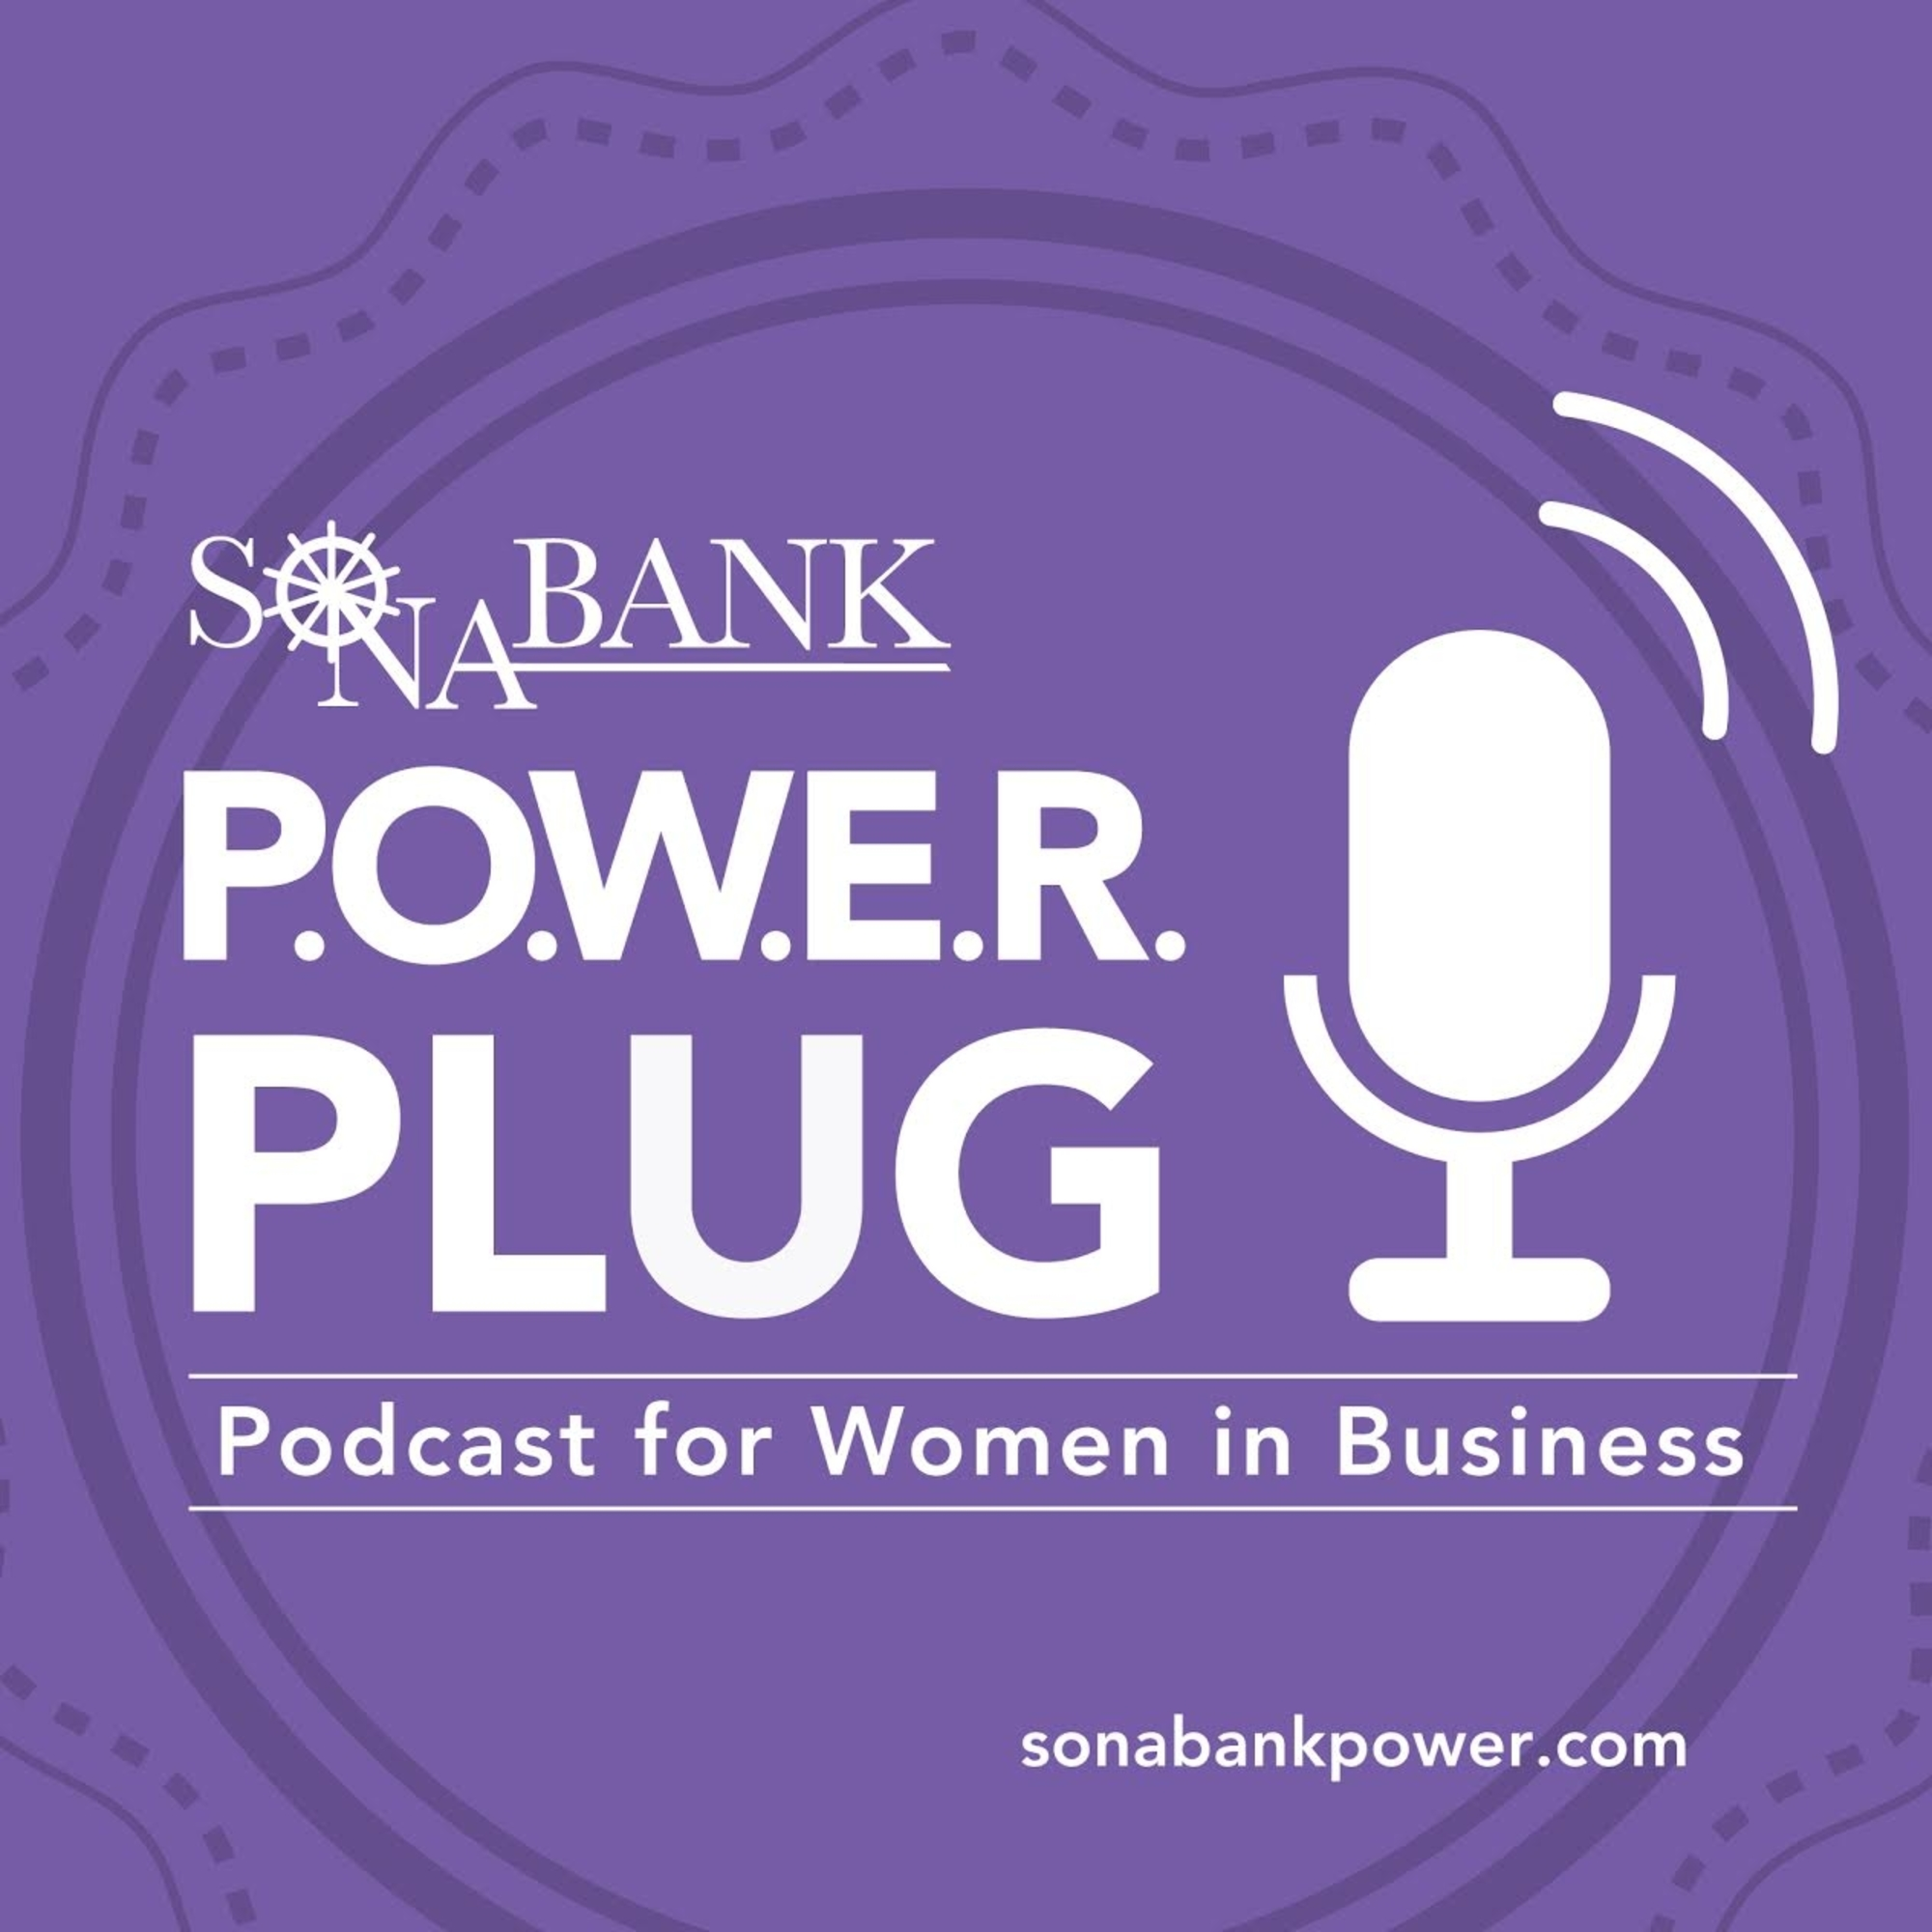 Sonabank P.O.W.E.R. Plug Podcast for Women in Business show art